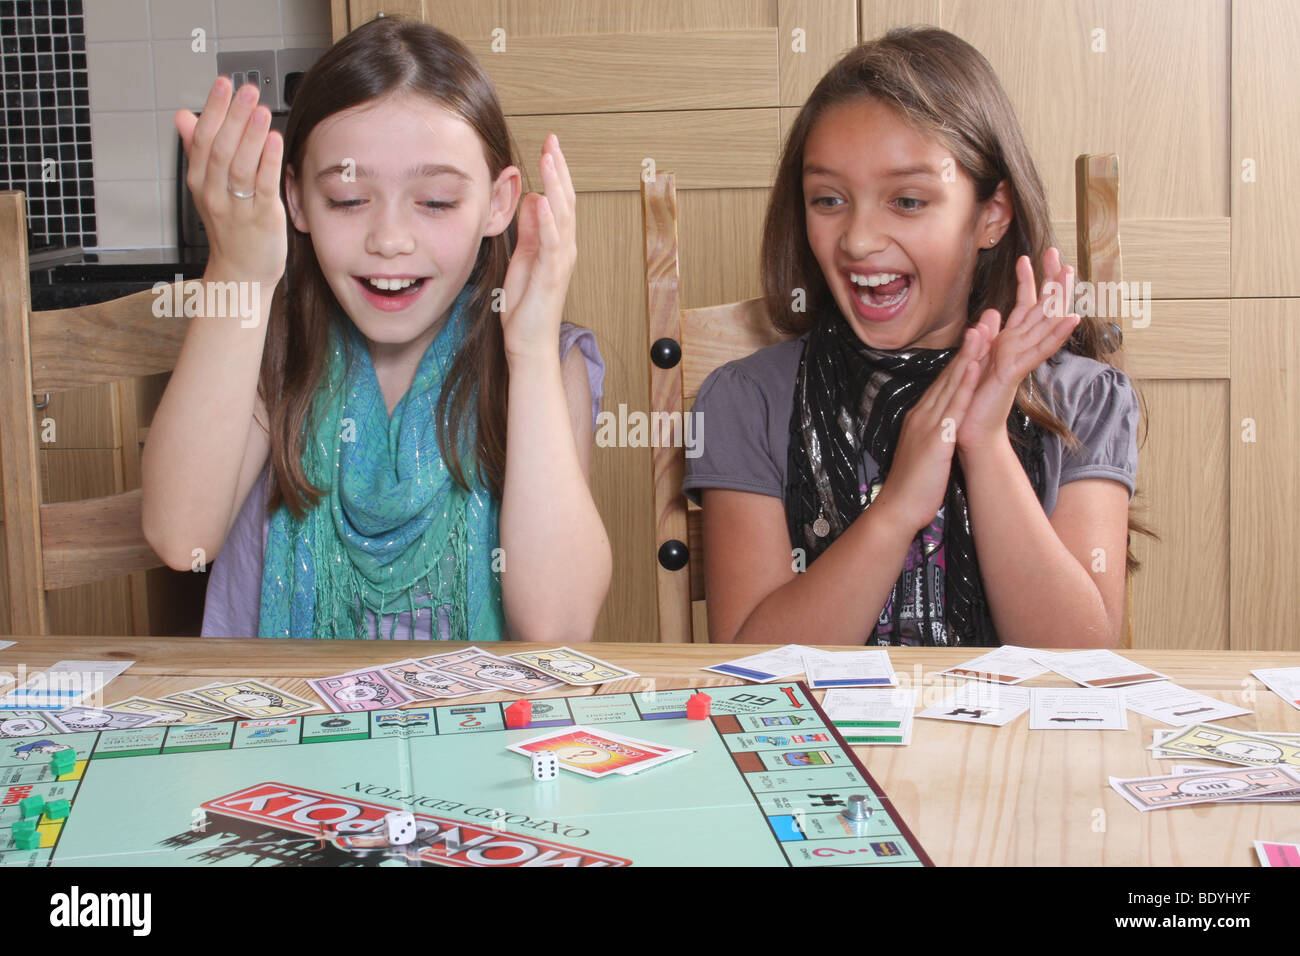 Children playing Monopoly. - Stock Image